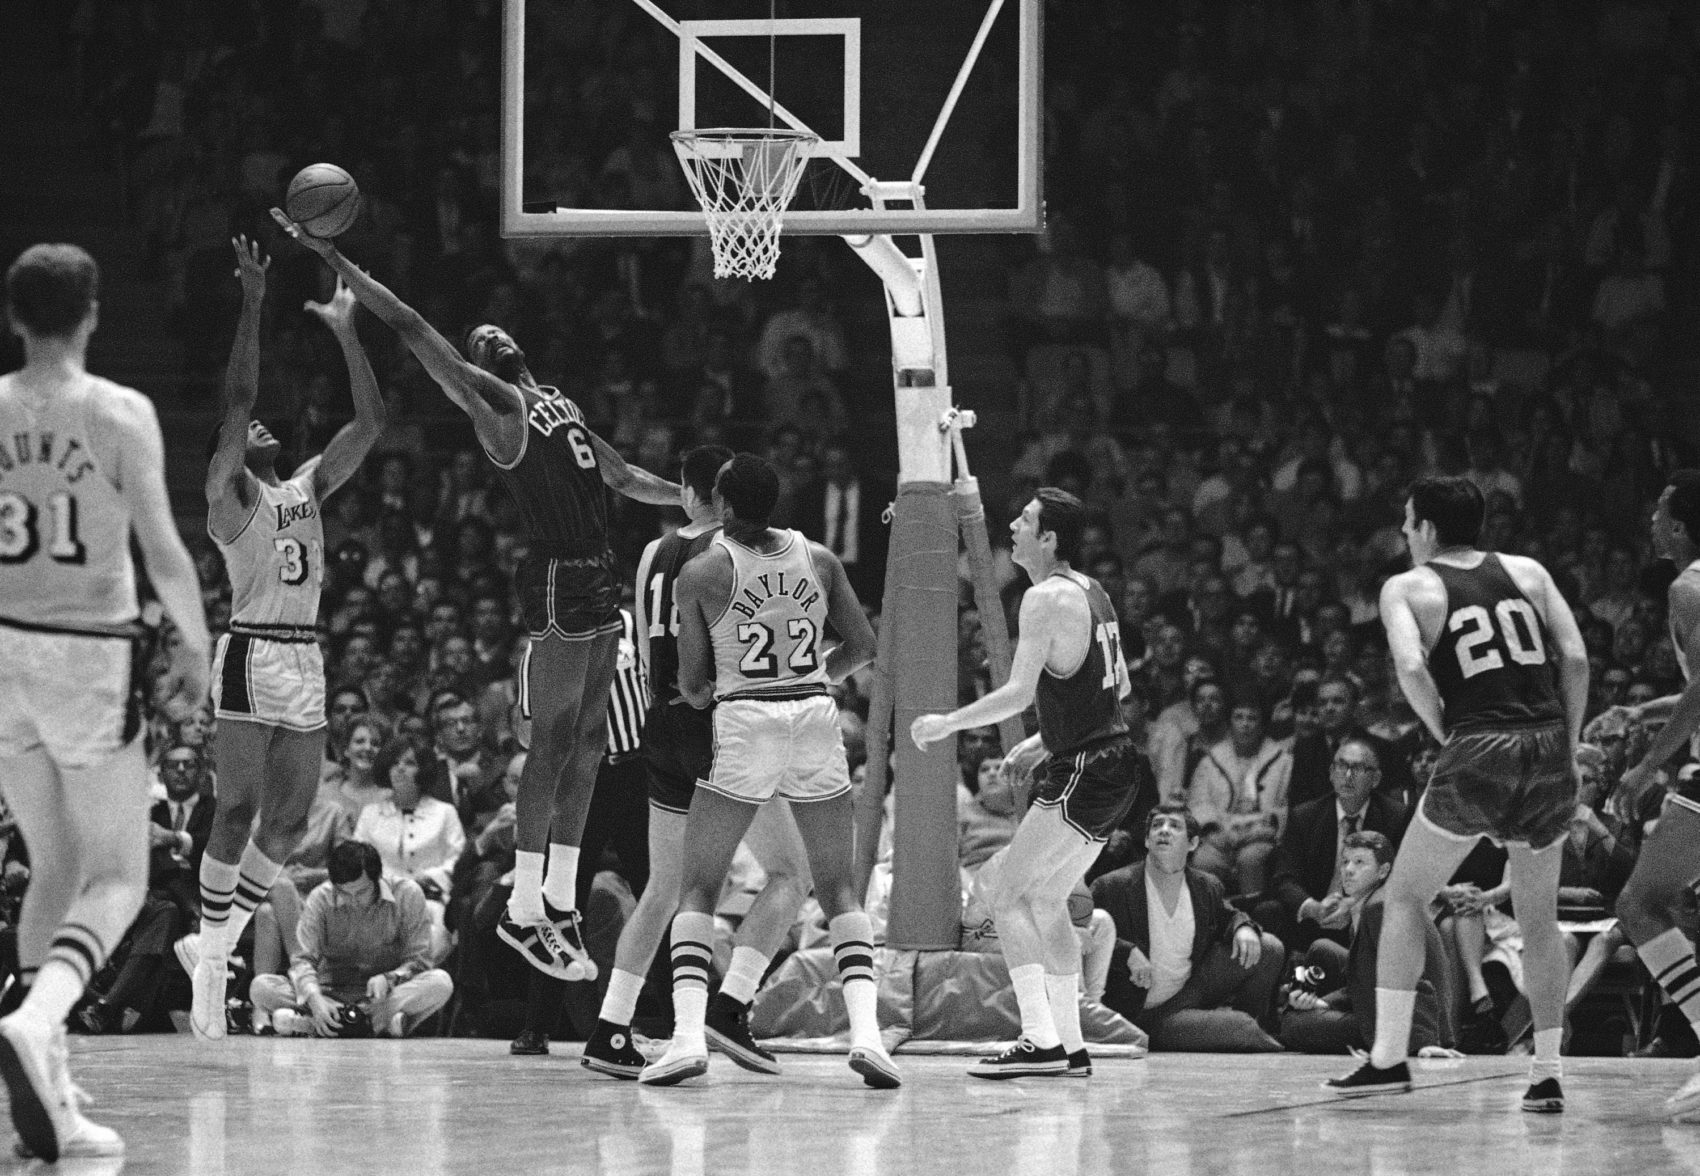 Bill Russell (6) won 11 championships in 13 years playing for the Celtics. (HF/AP)